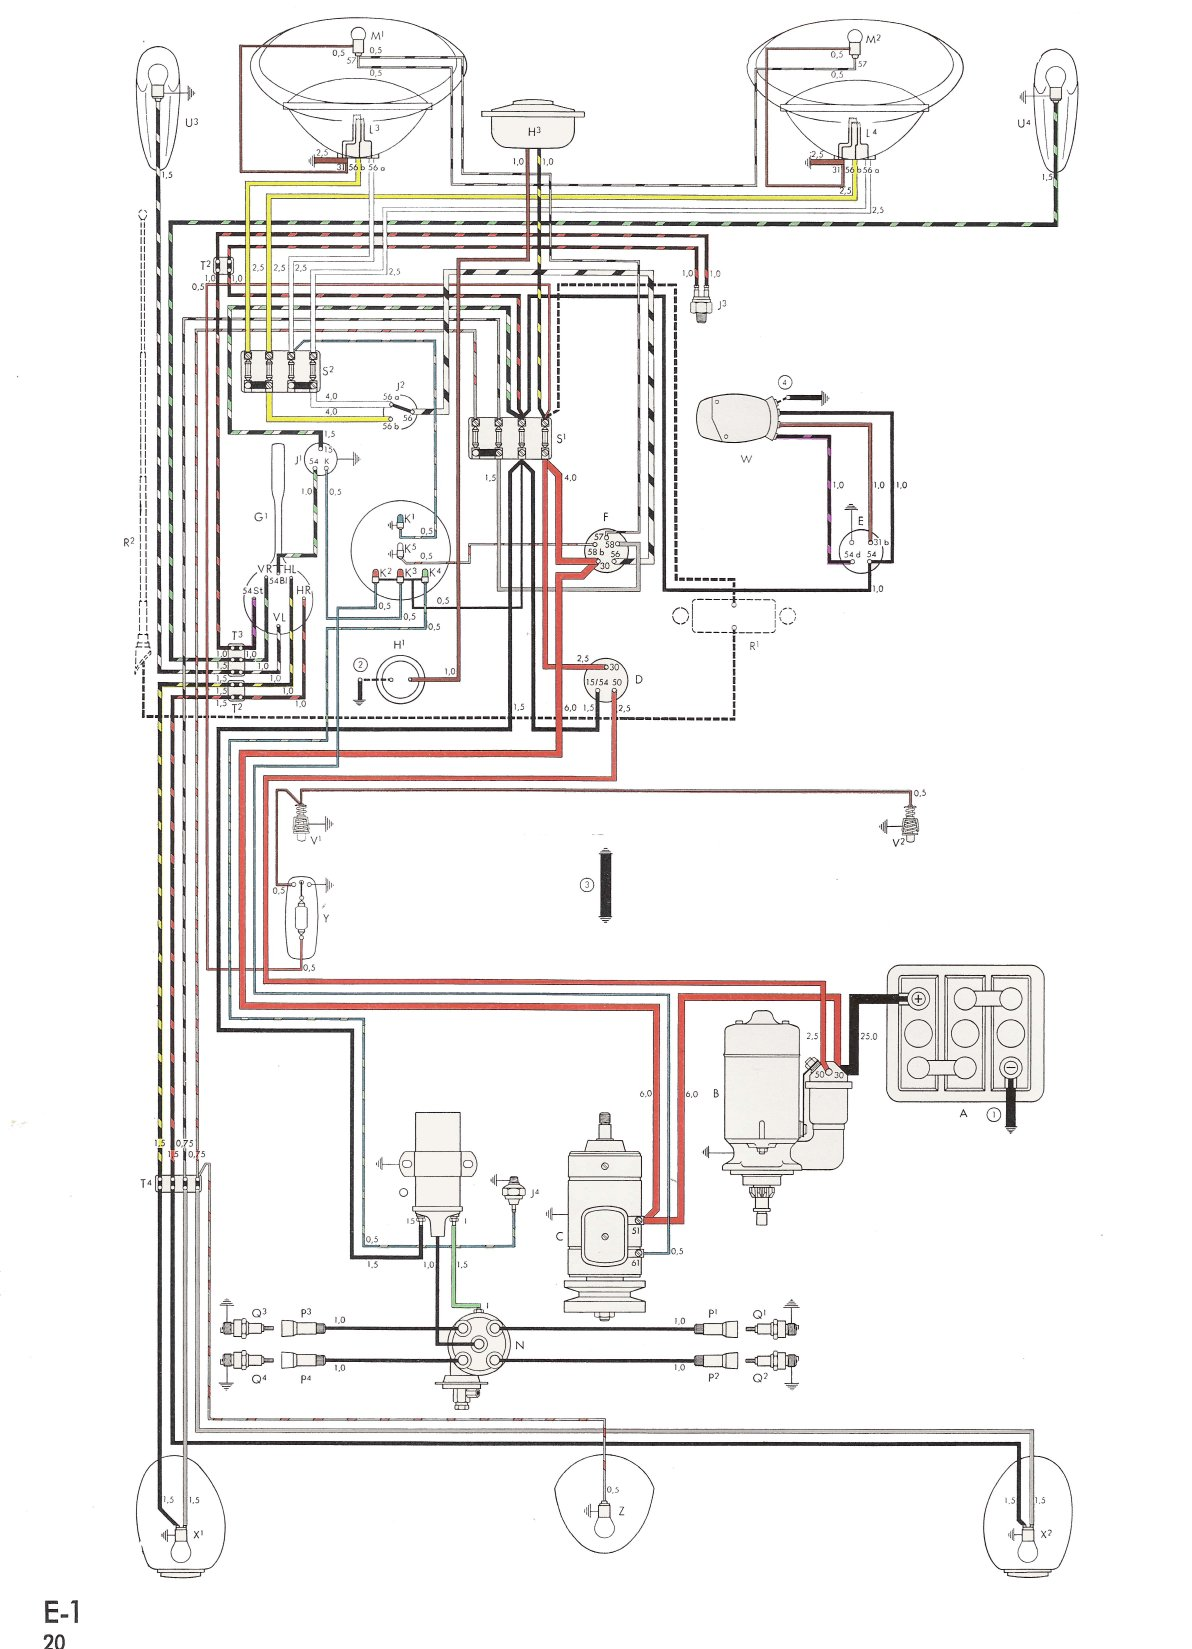 bug60 thesamba com type 1 wiring diagrams wiring diagram for 1972 vw beetle at sewacar.co